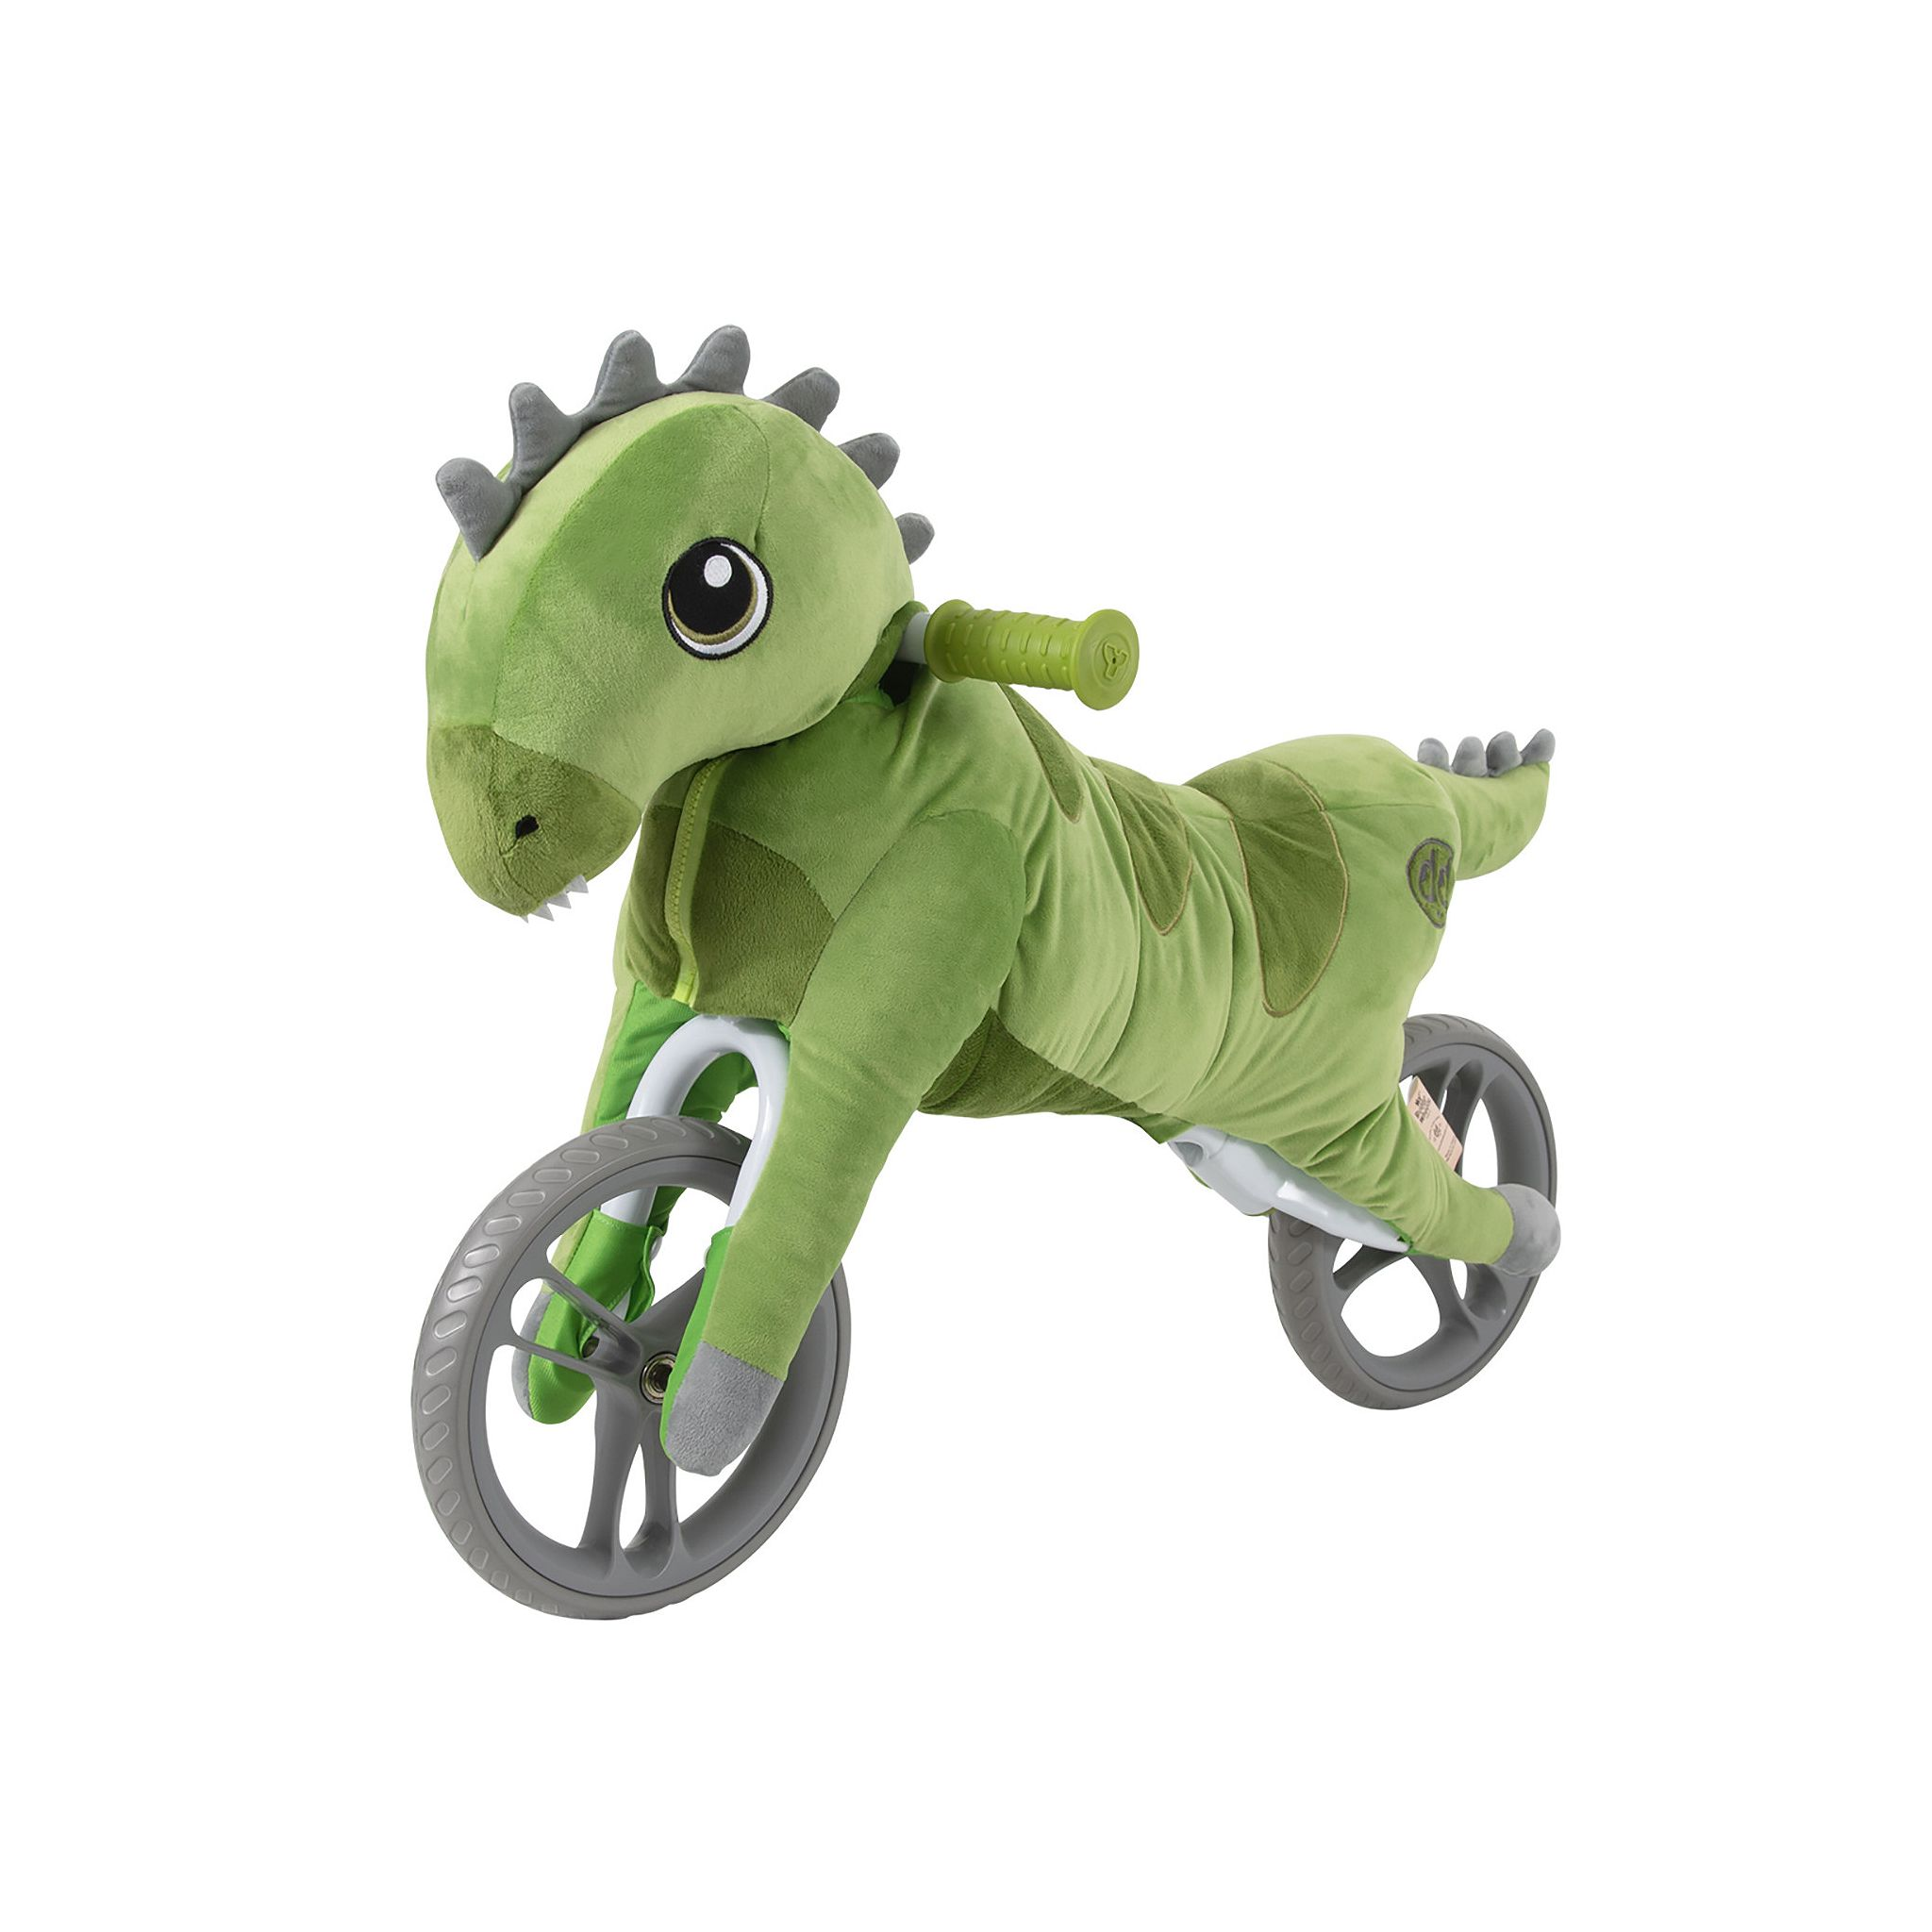 Yvolution My Buddy Wheels Dino Balance Bike with Plush Toy